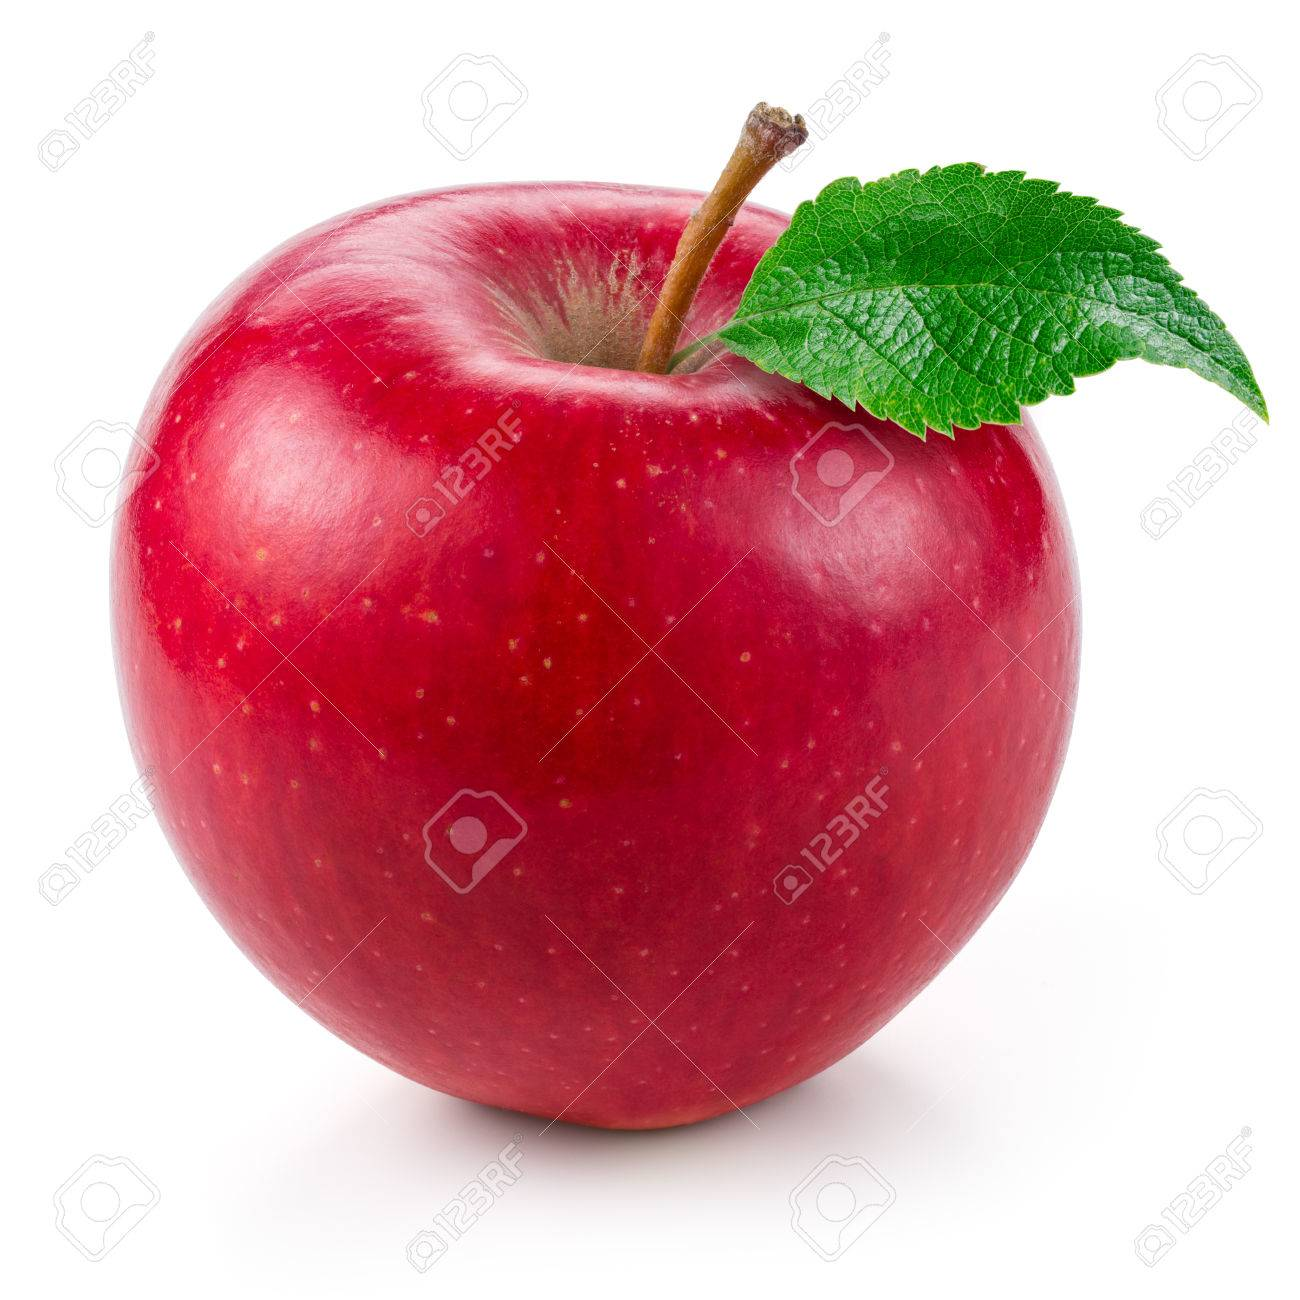 Fresh red apple with leaf isolated on white. - 59830973